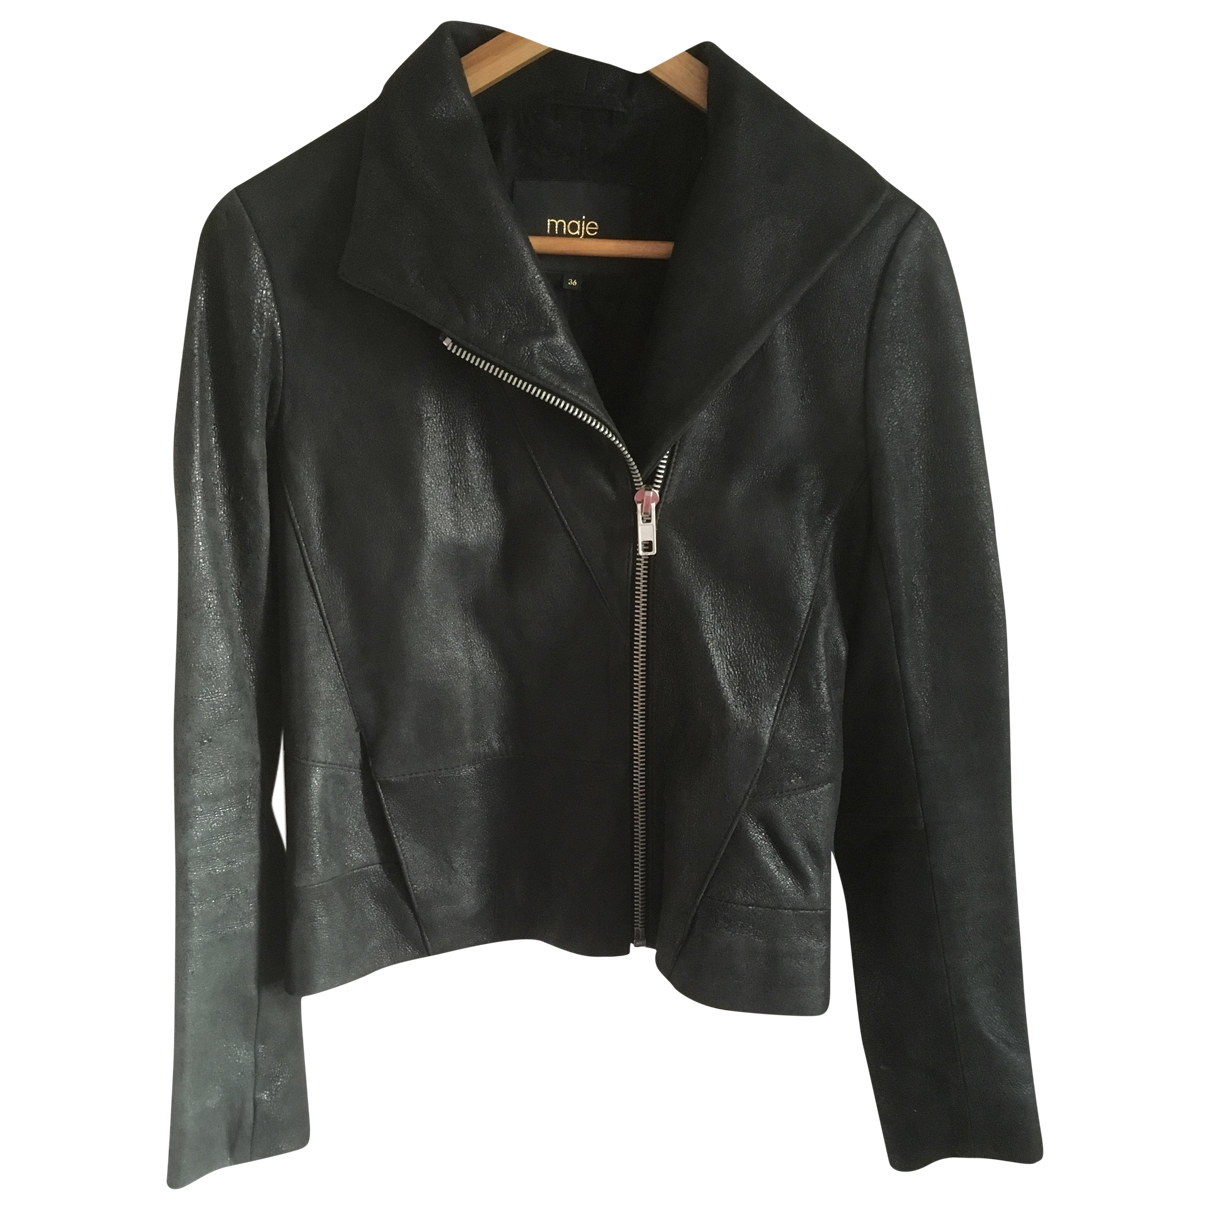 Maje \N Black Leather jacket for Women 36 FR